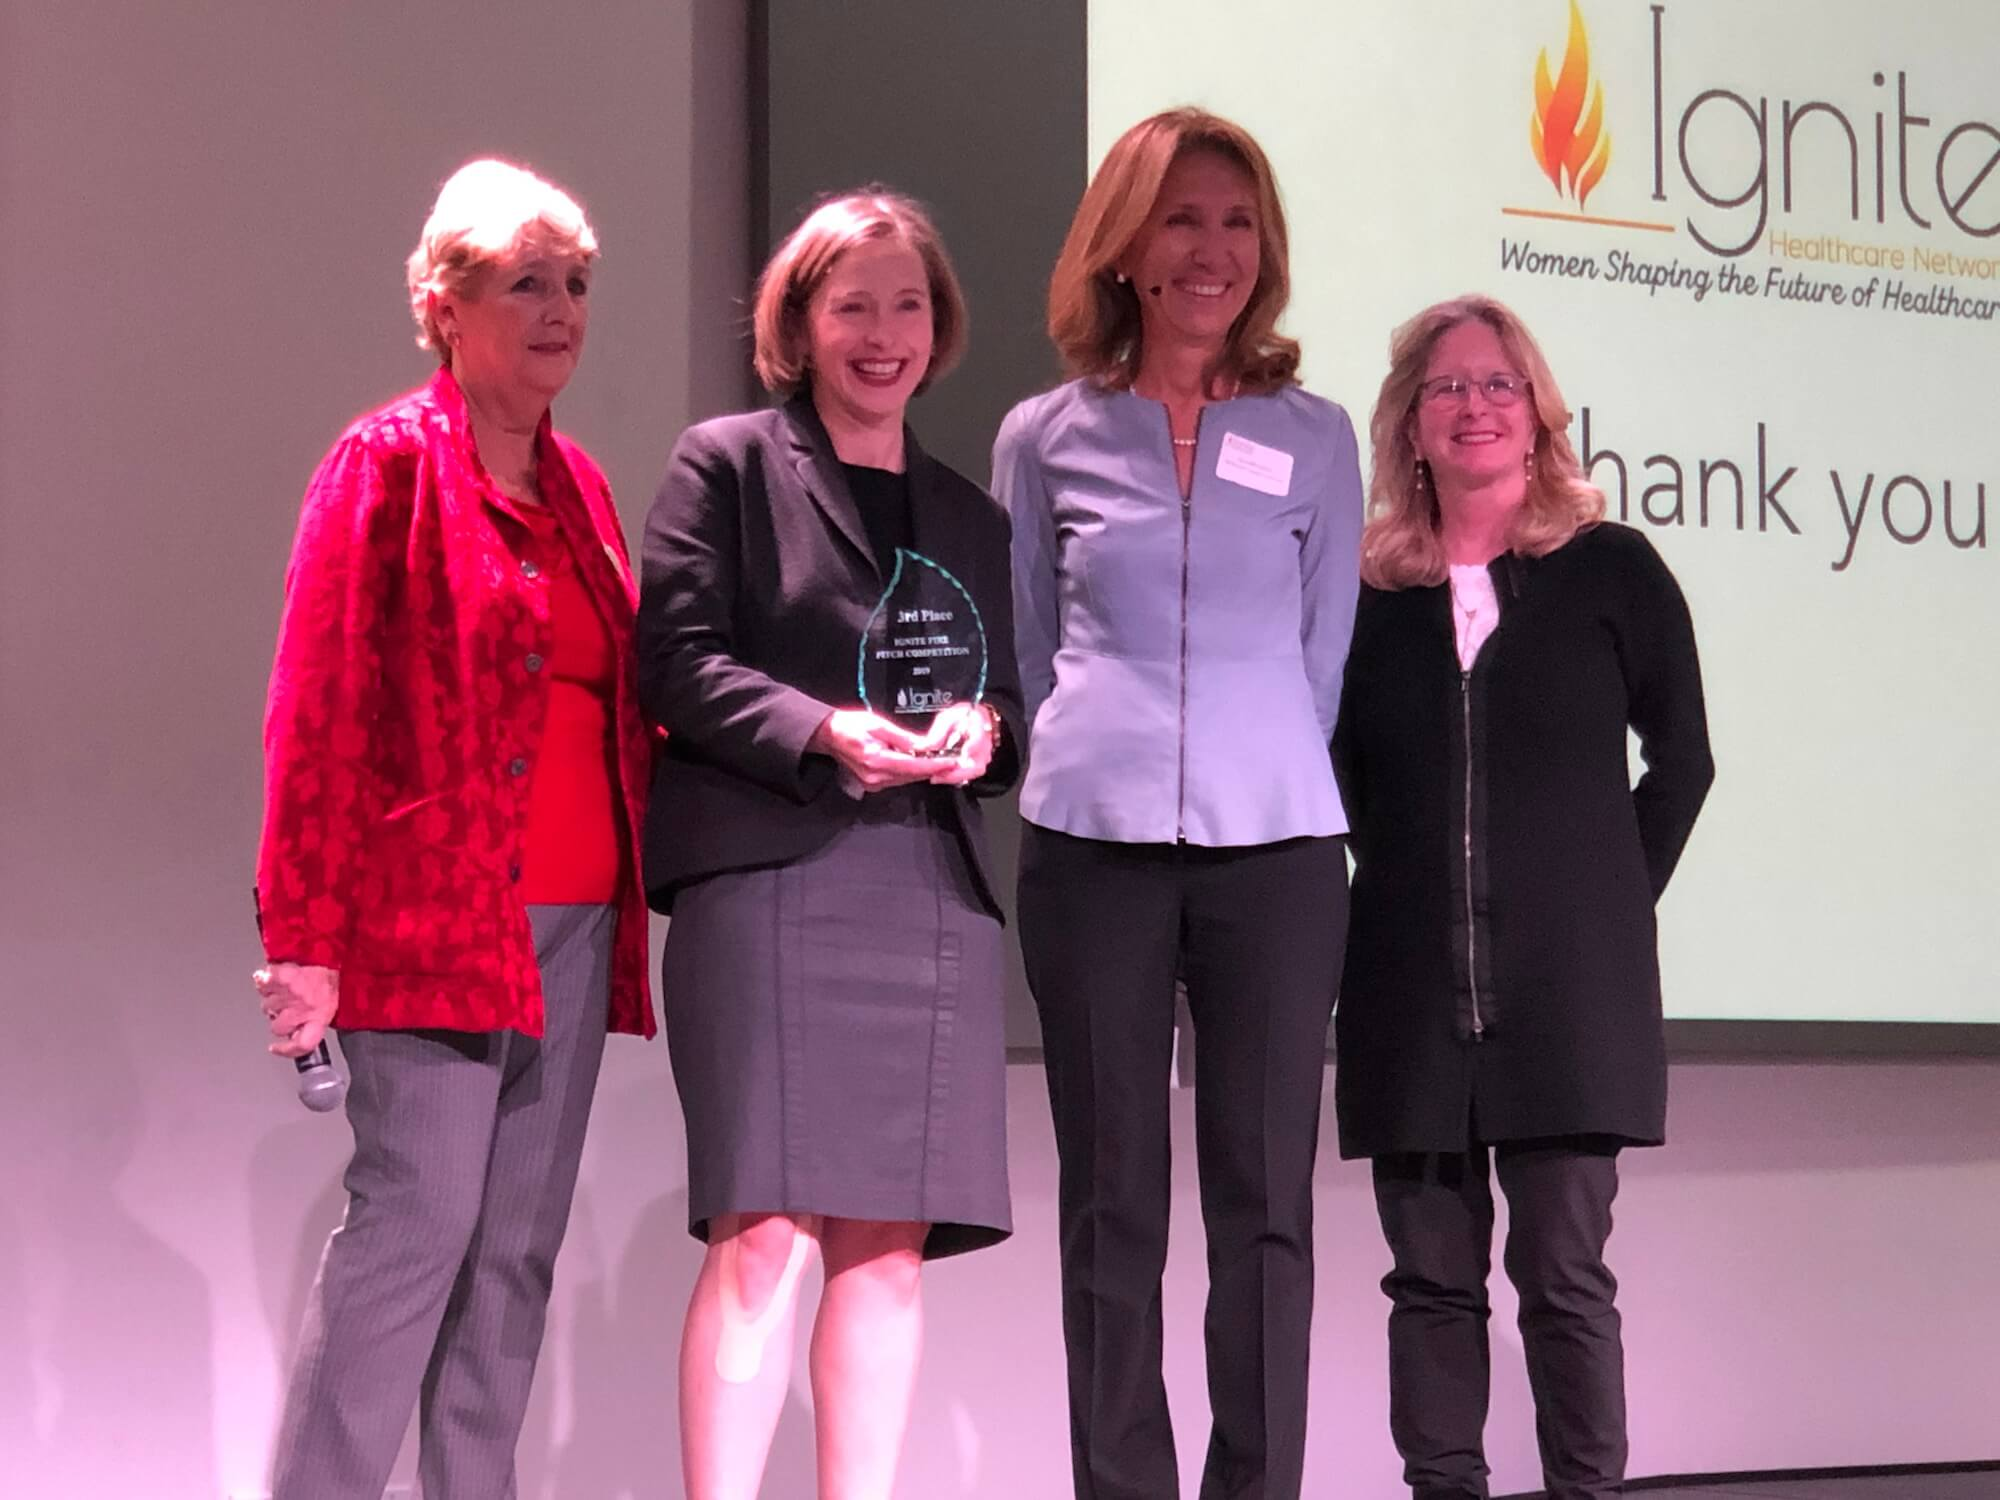 From left to right: Cheryl Stavins, Ignite board member and event co-chair;  Mylea Charvet, Ph.D., founder and CEO of Savonix and the third-place winner of the Third Annual Fire Pitch Competition; Ayse McCracken, Ignite founder; and Patricia Gail Bray, Ph.D., Ignite board member and founding director of the BridgeUp Center at The Menninger Clinic.